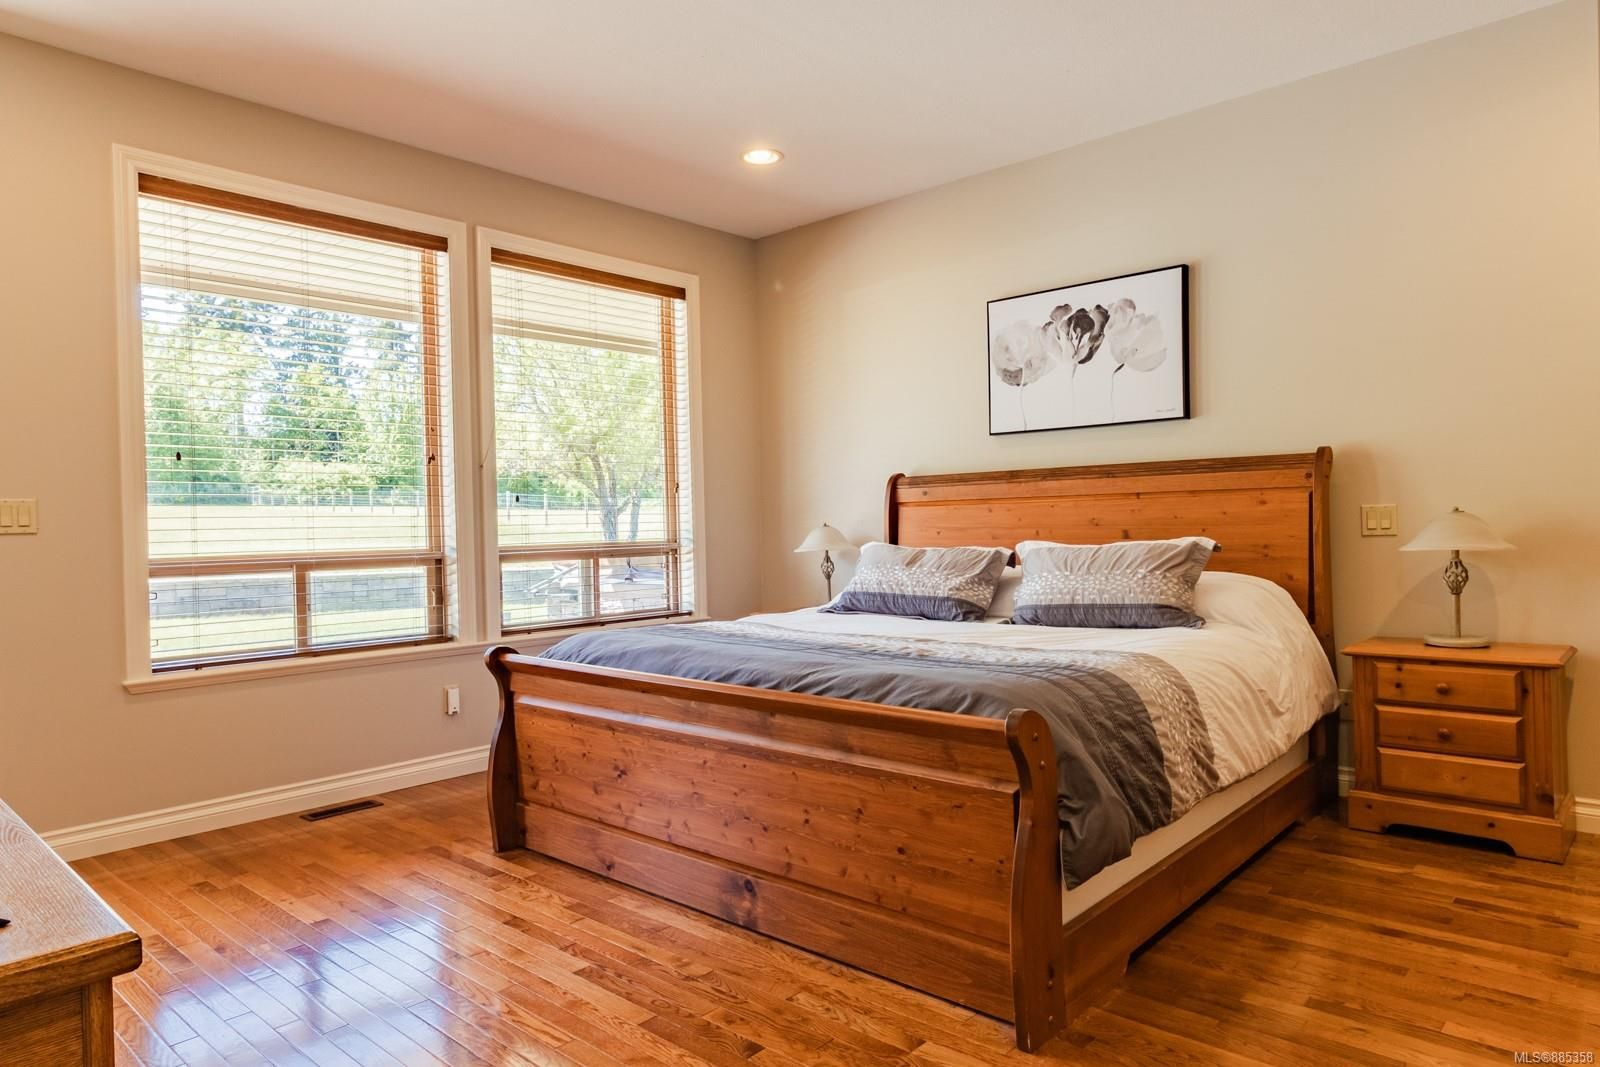 Photo 17: Photos: 2850 Peters Rd in : PQ Qualicum Beach House for sale (Parksville/Qualicum)  : MLS®# 885358